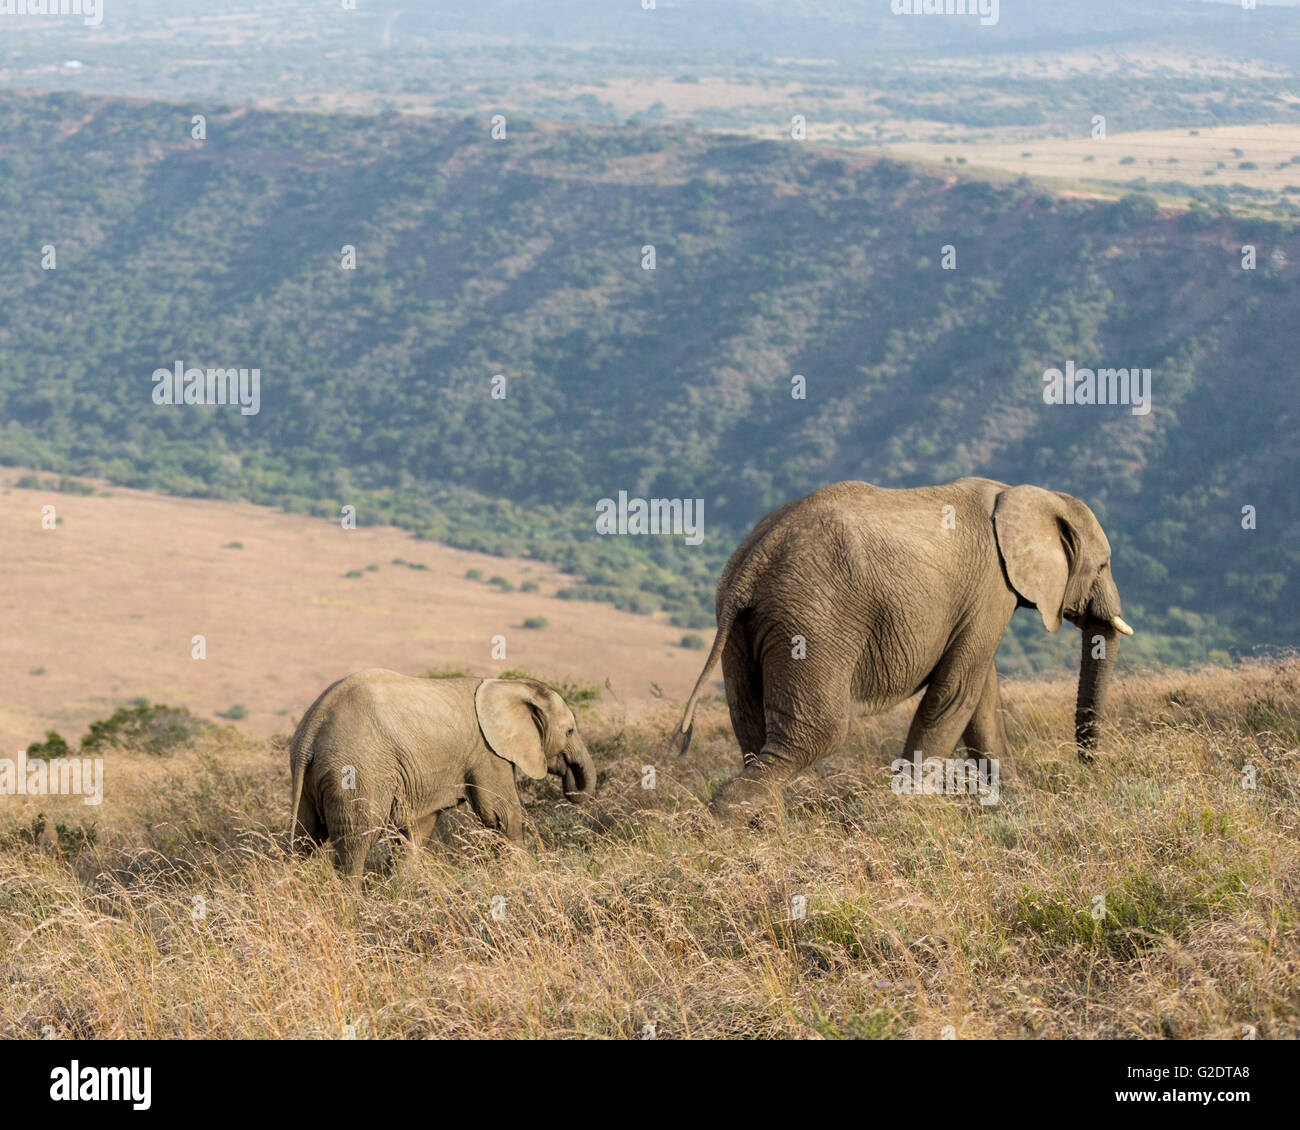 Elephant And Calf Trecking Across The South African Veldt - Stock Image